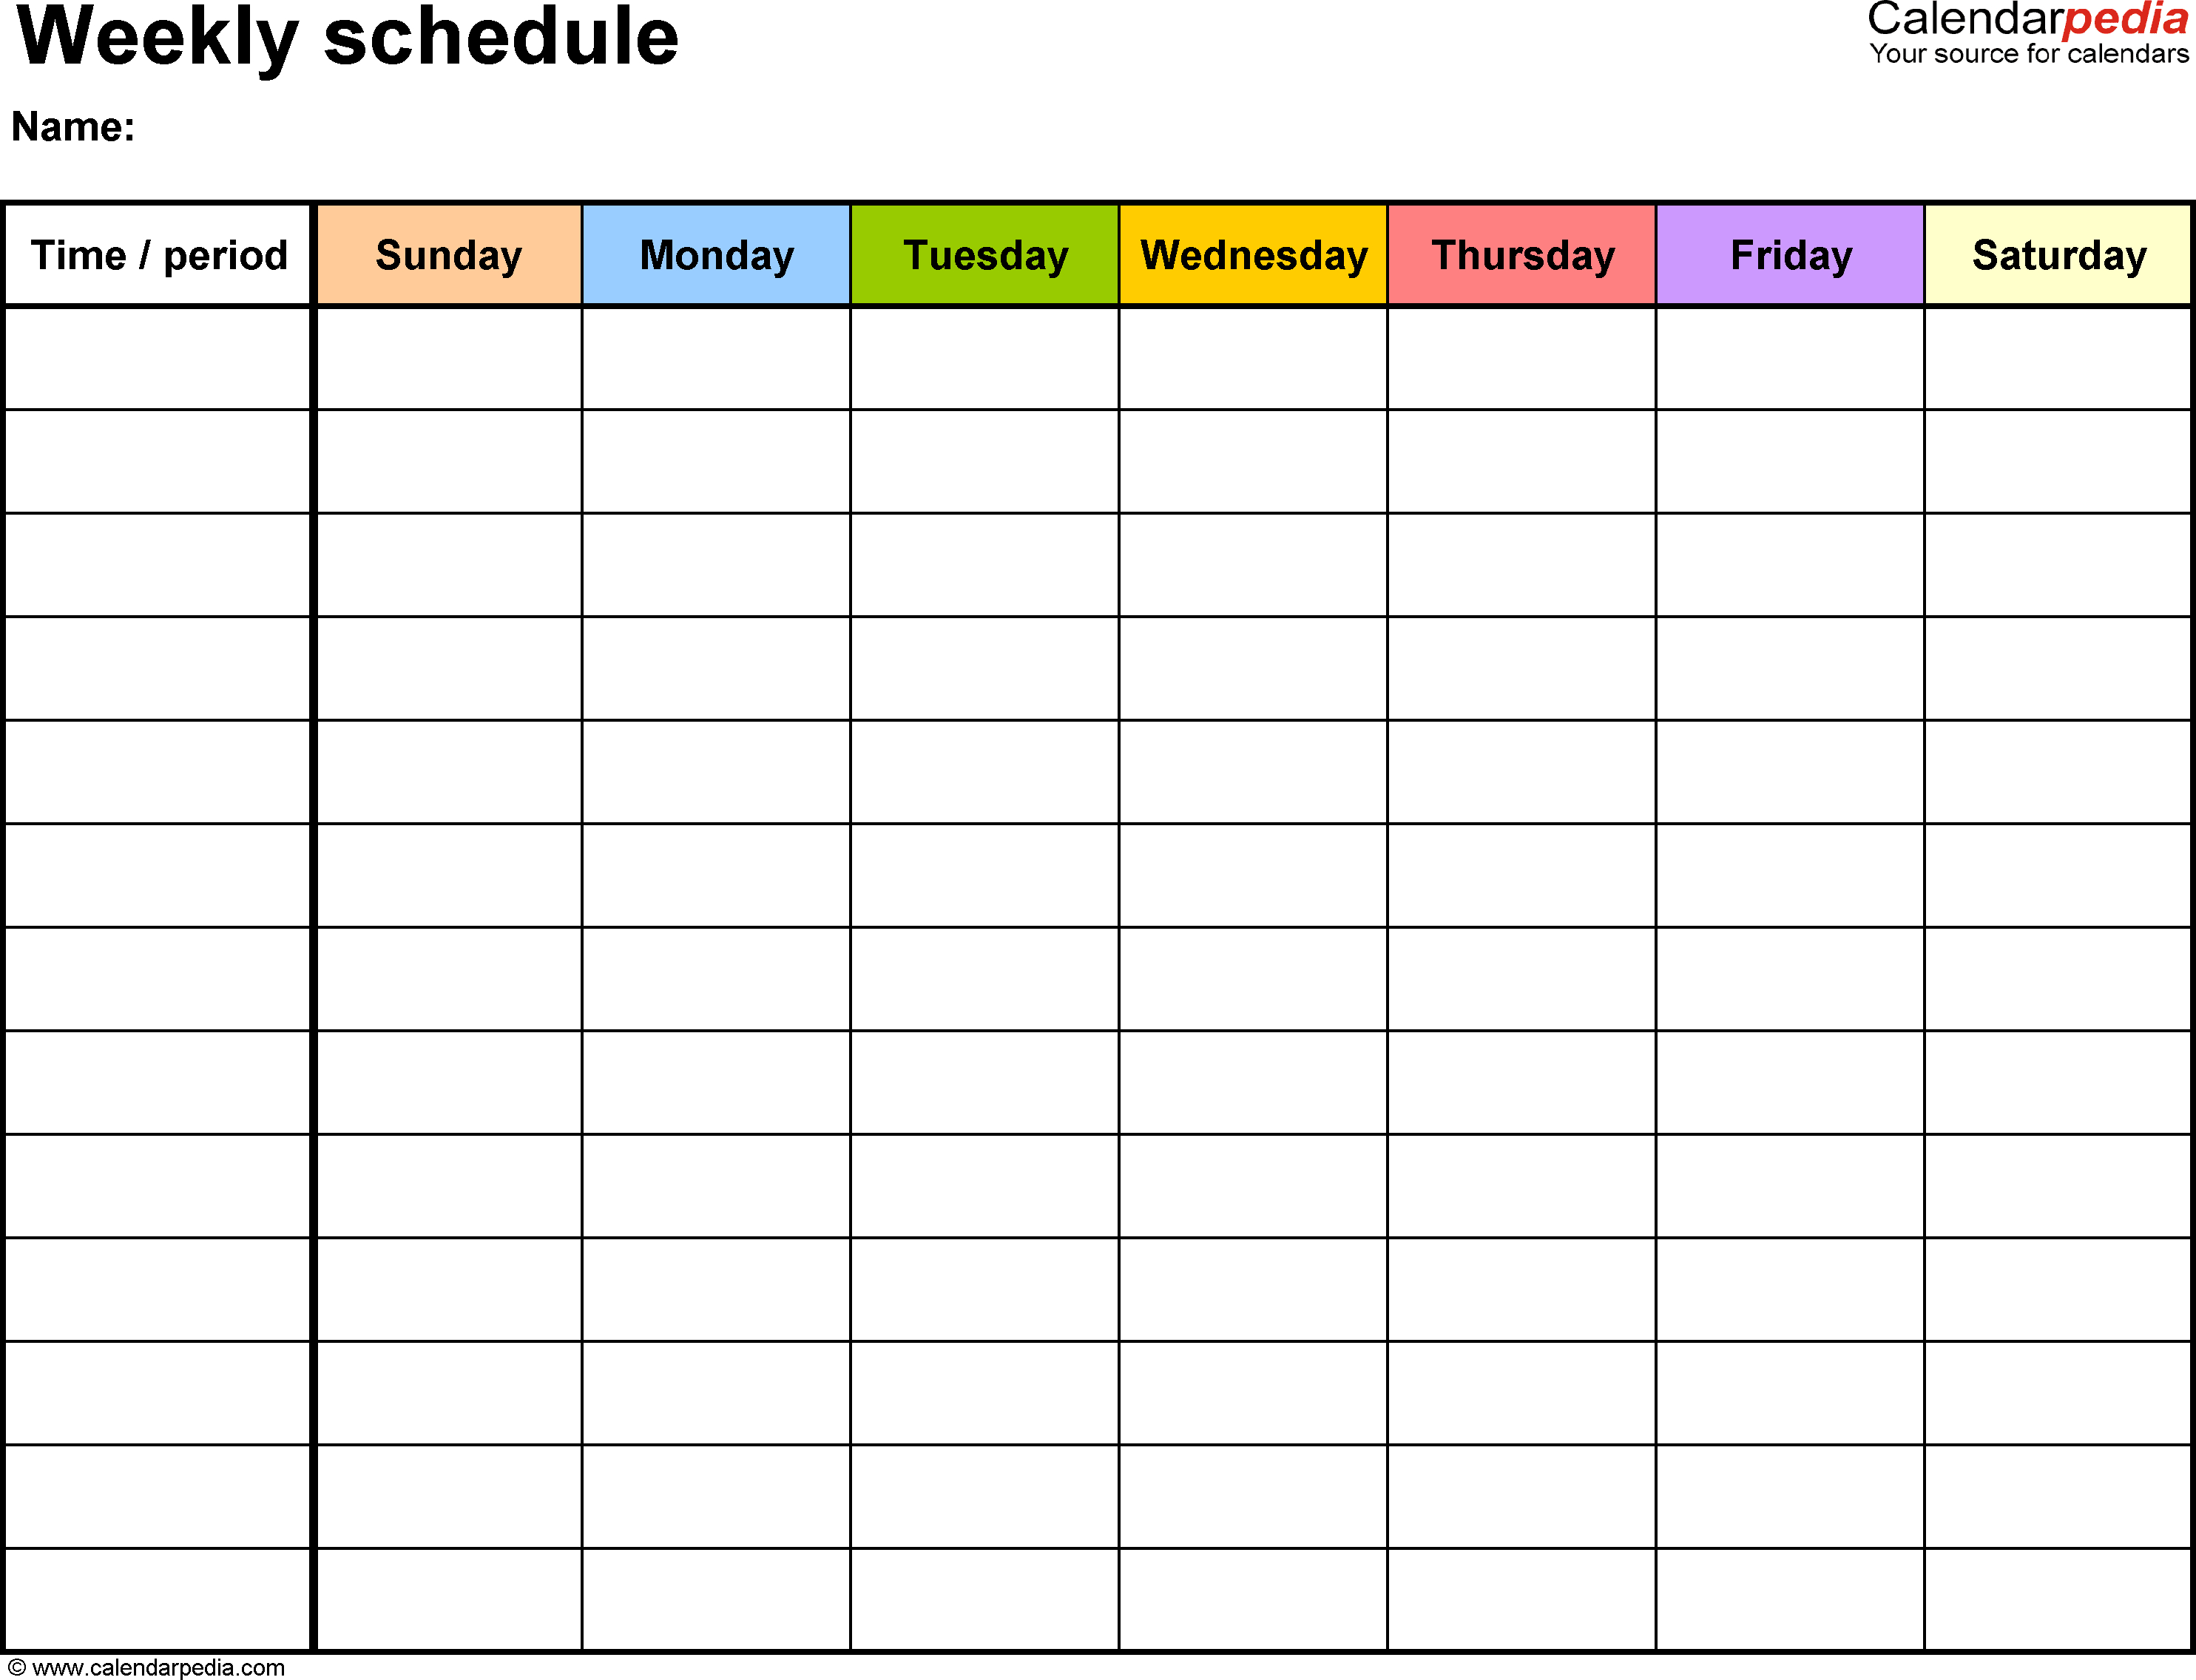 Free Weekly Schedule Templates For Excel - 18 Templates throughout 2 Week Work Schedule Templates